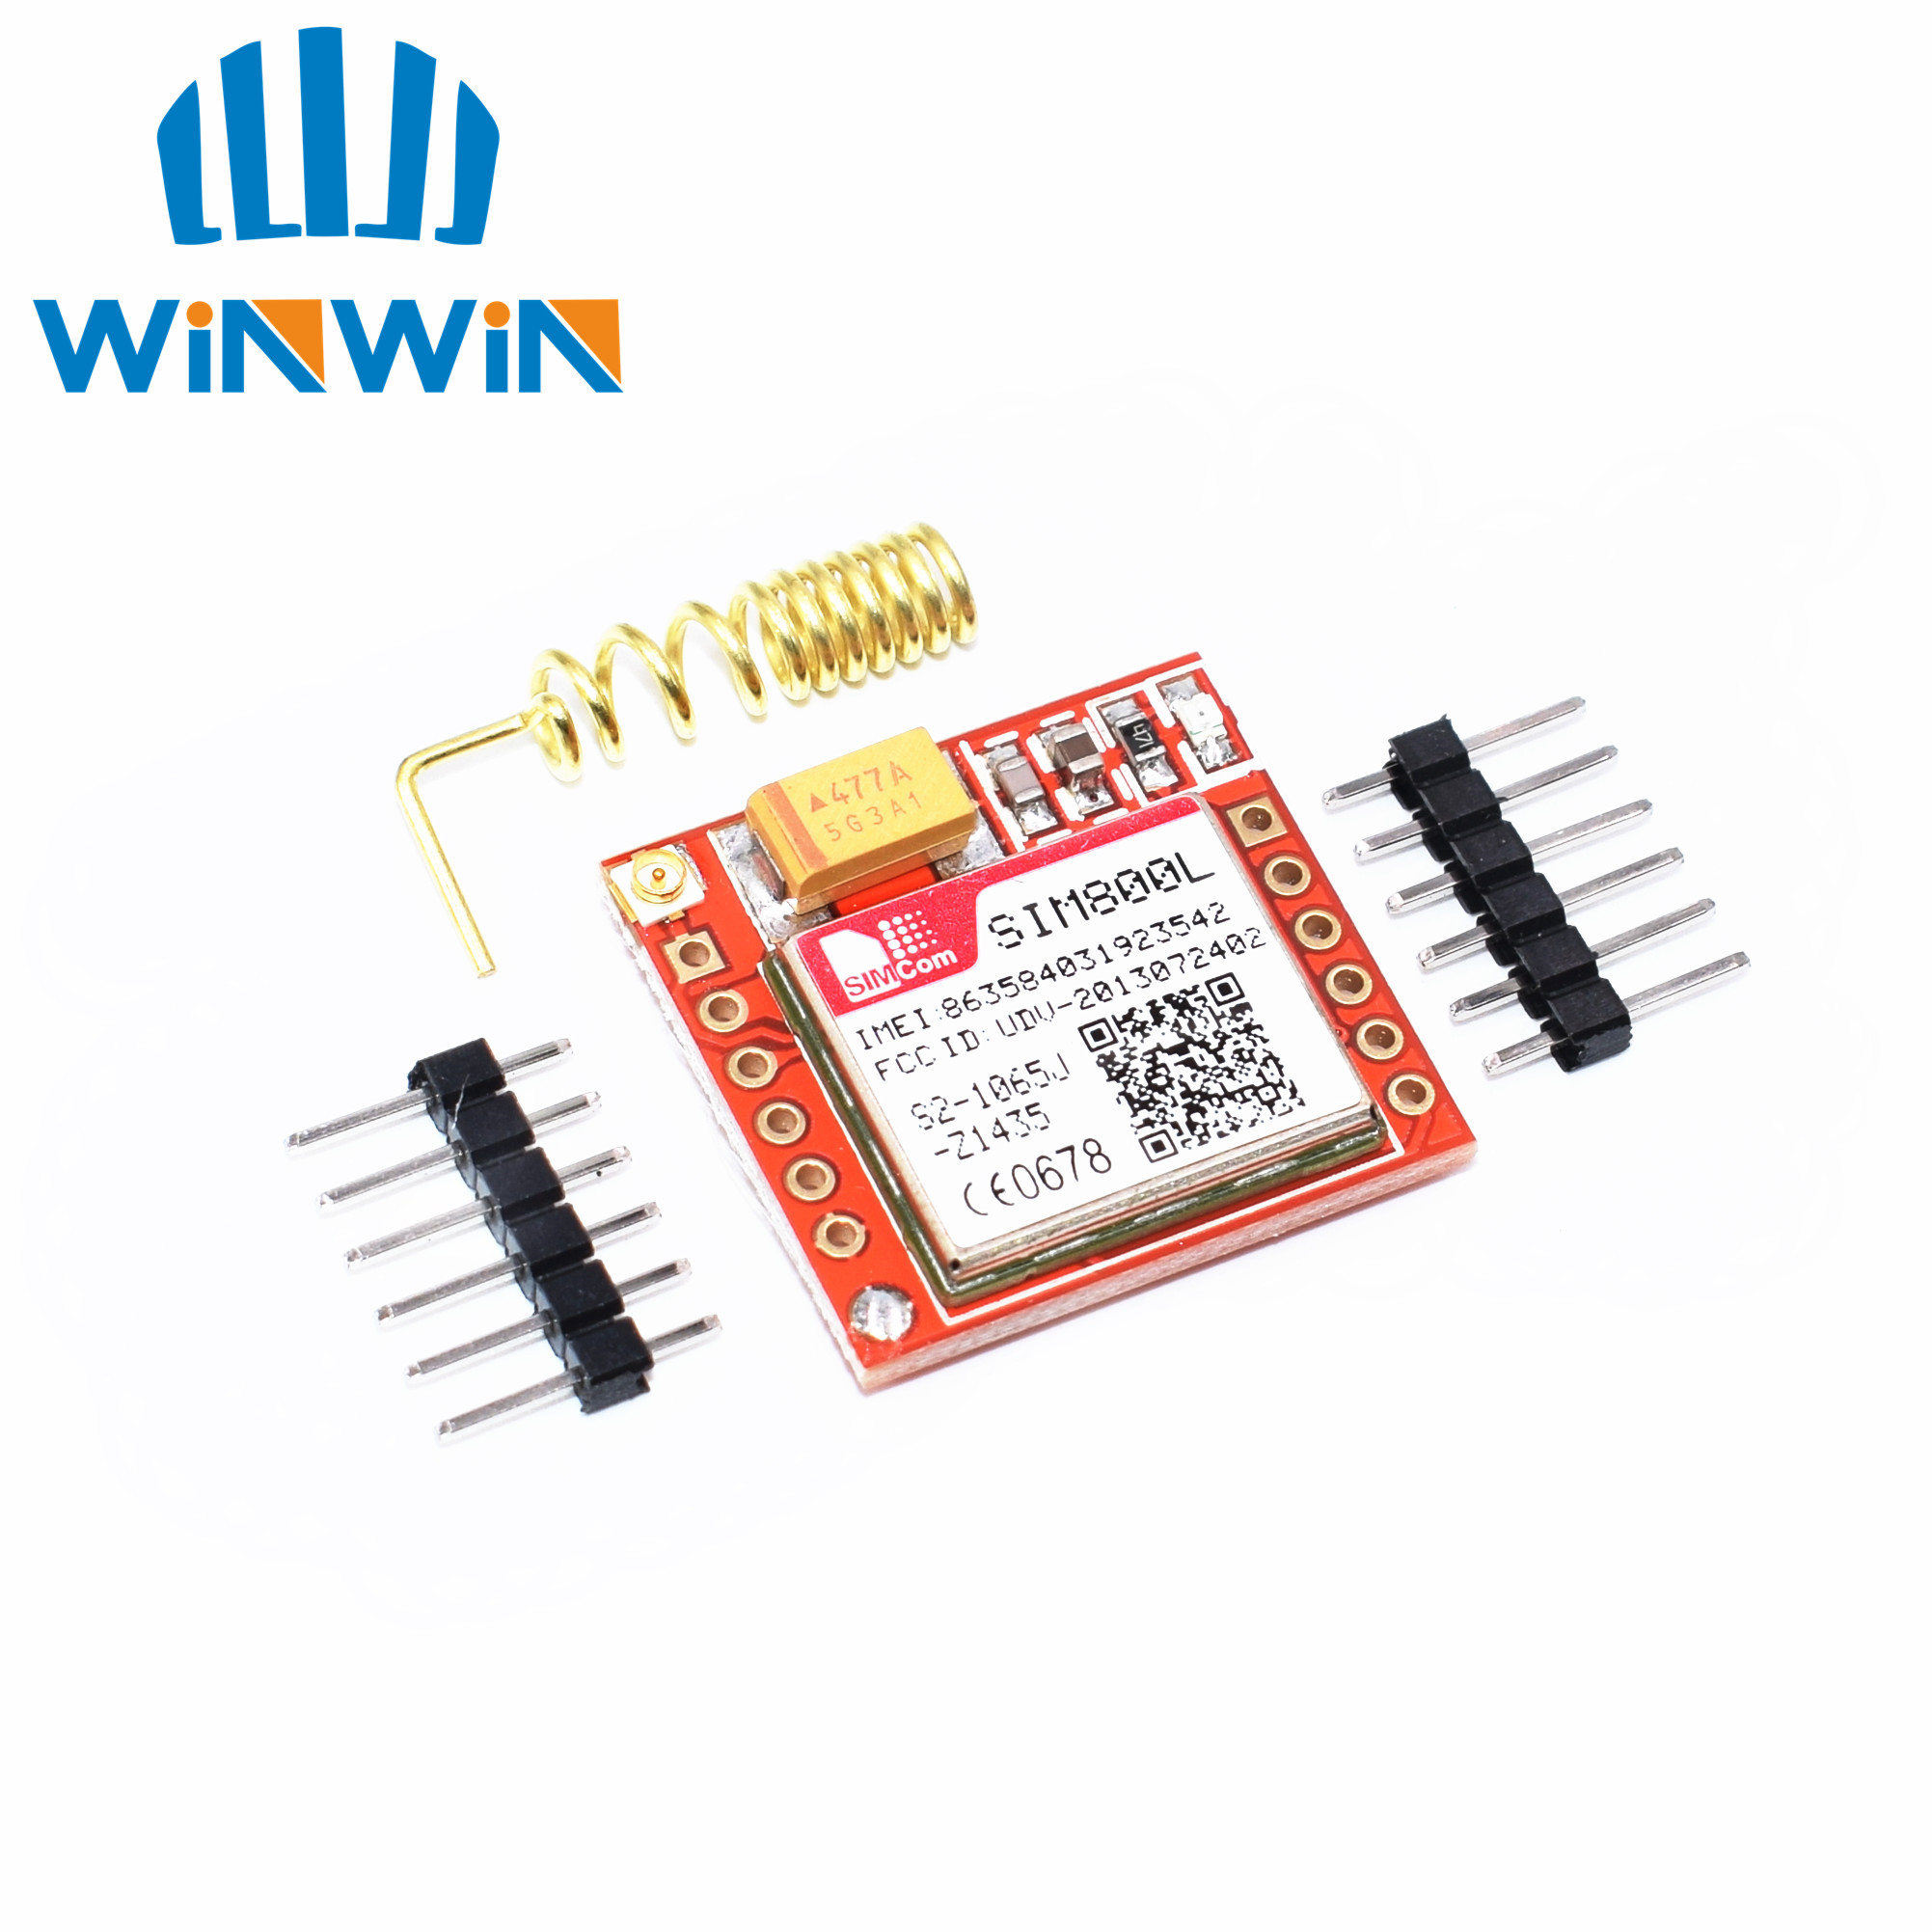 C52 1pcs Smallest SIM800L GPRS GSM Module MicroSIM Card Core BOard Quad-band TTL Serial Port